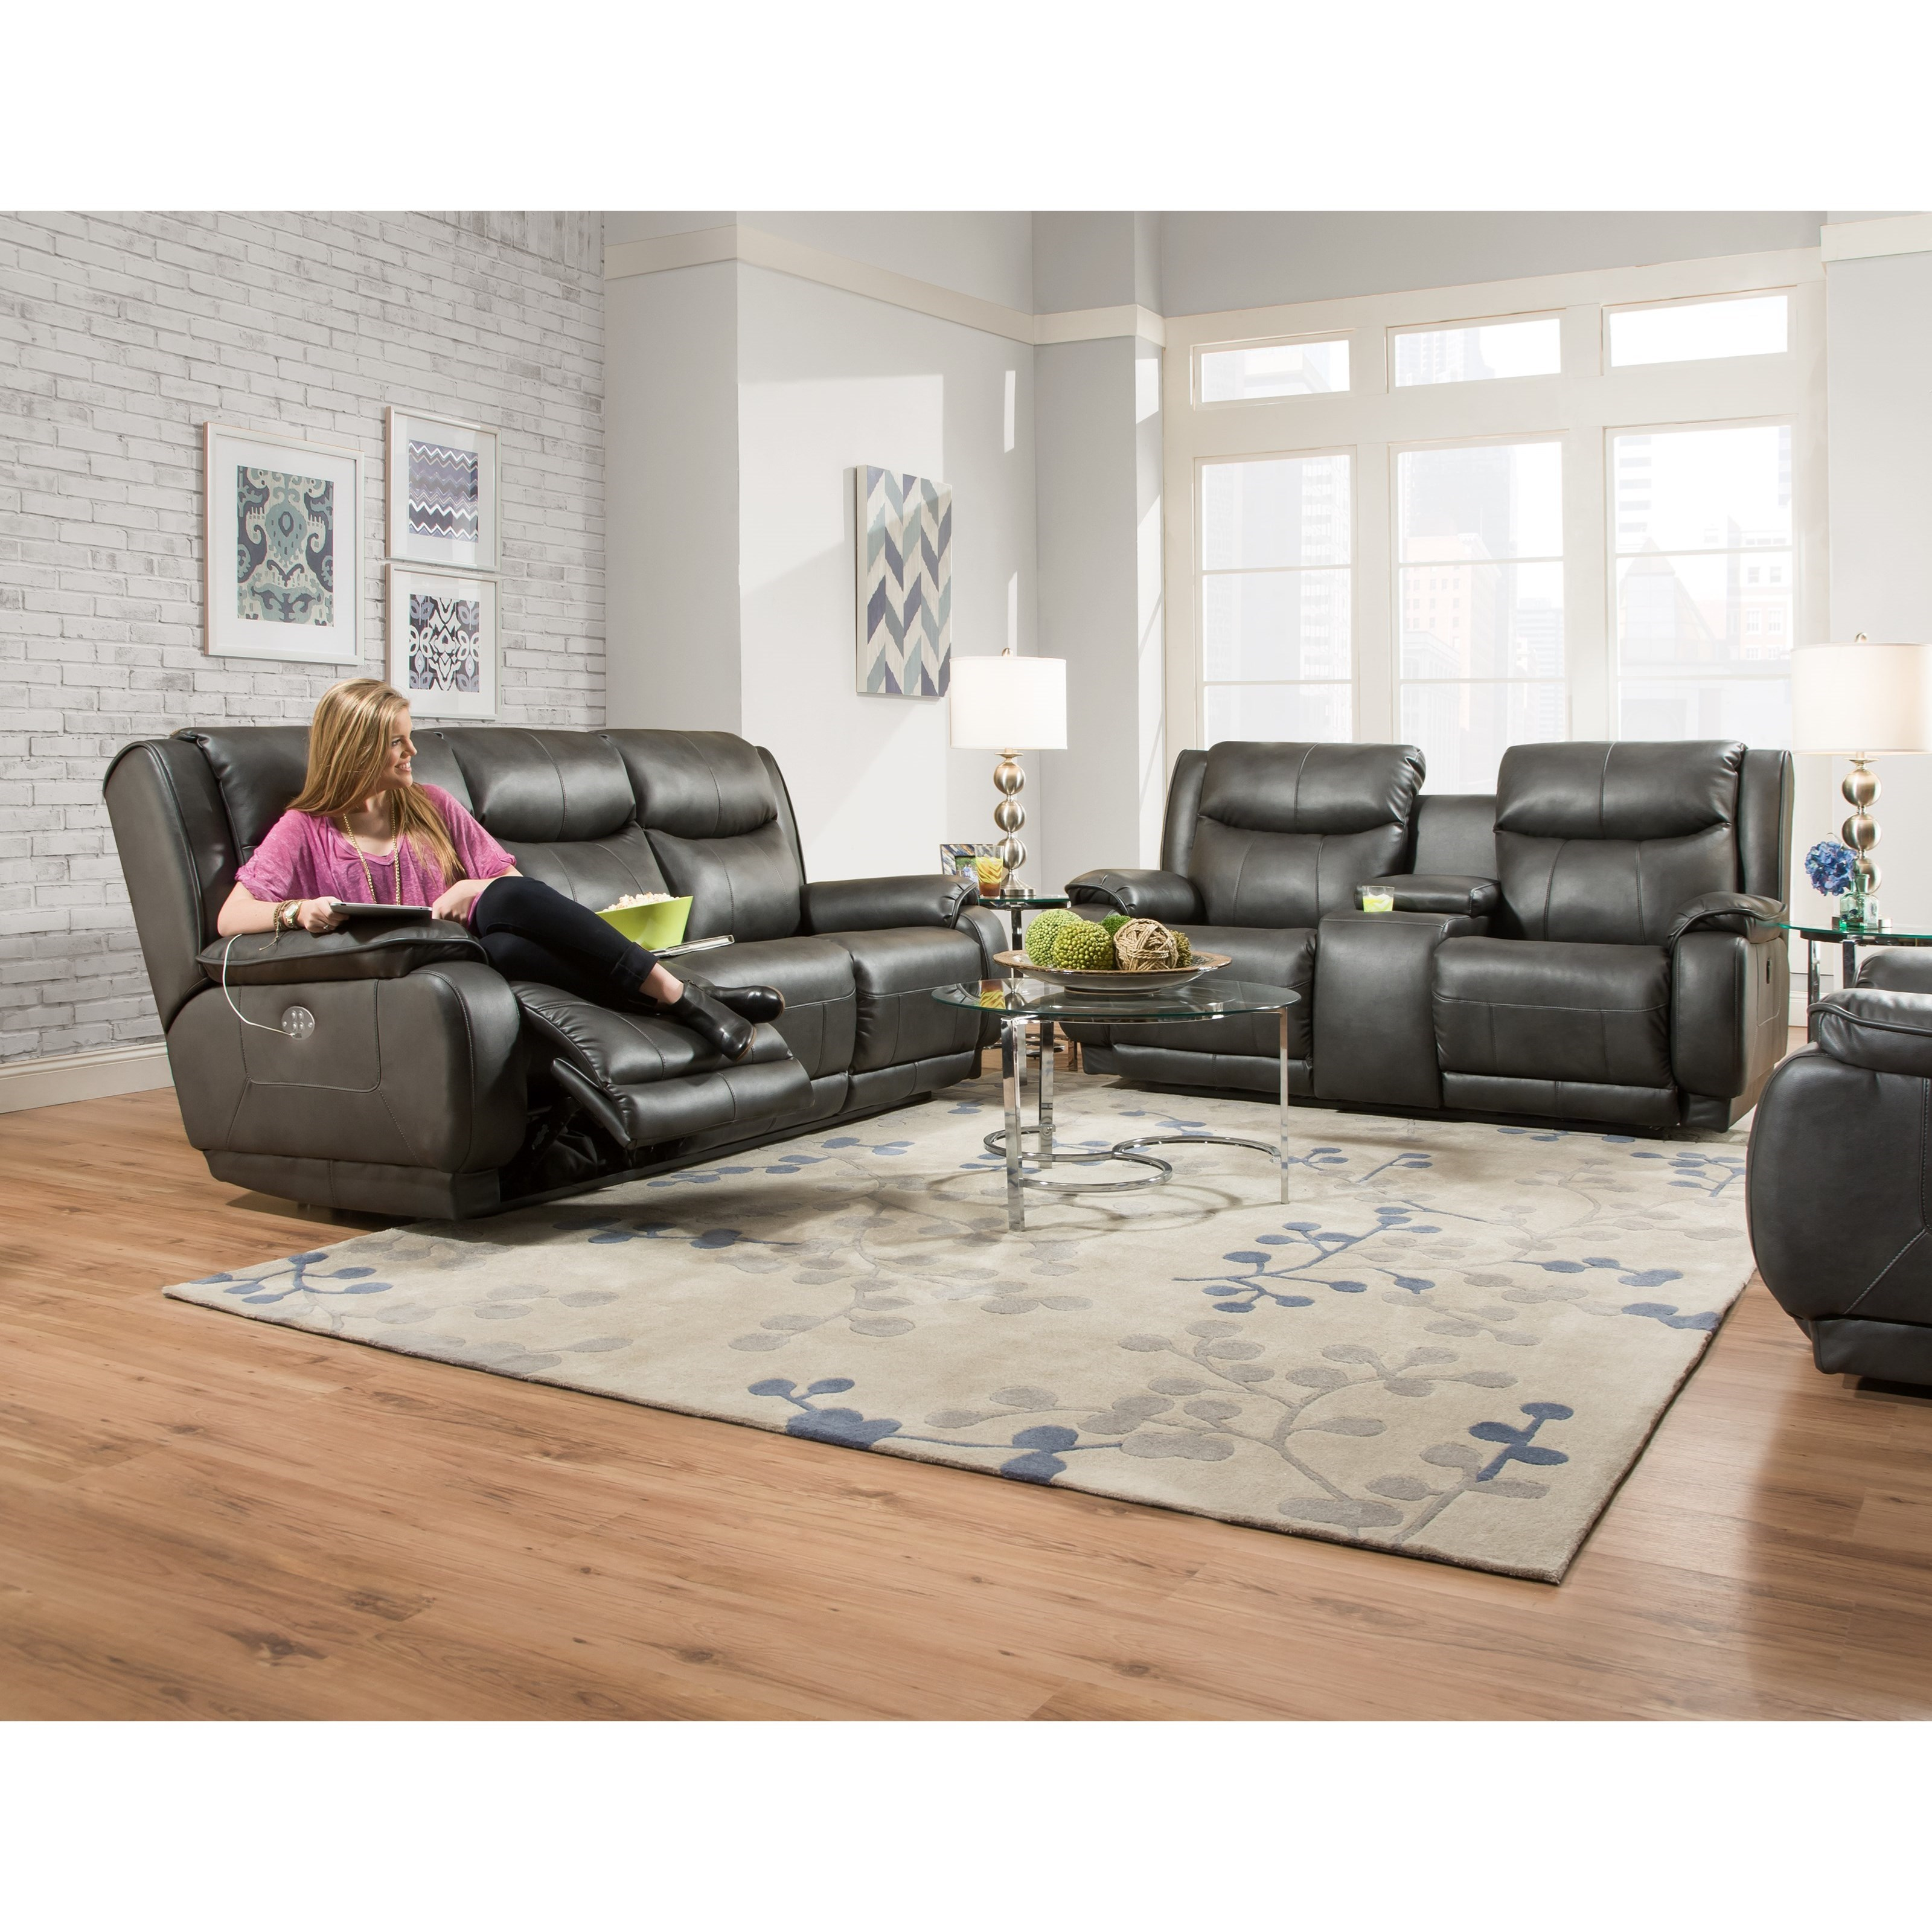 Southern Motion Velocity 875 78p Double Reclining Console